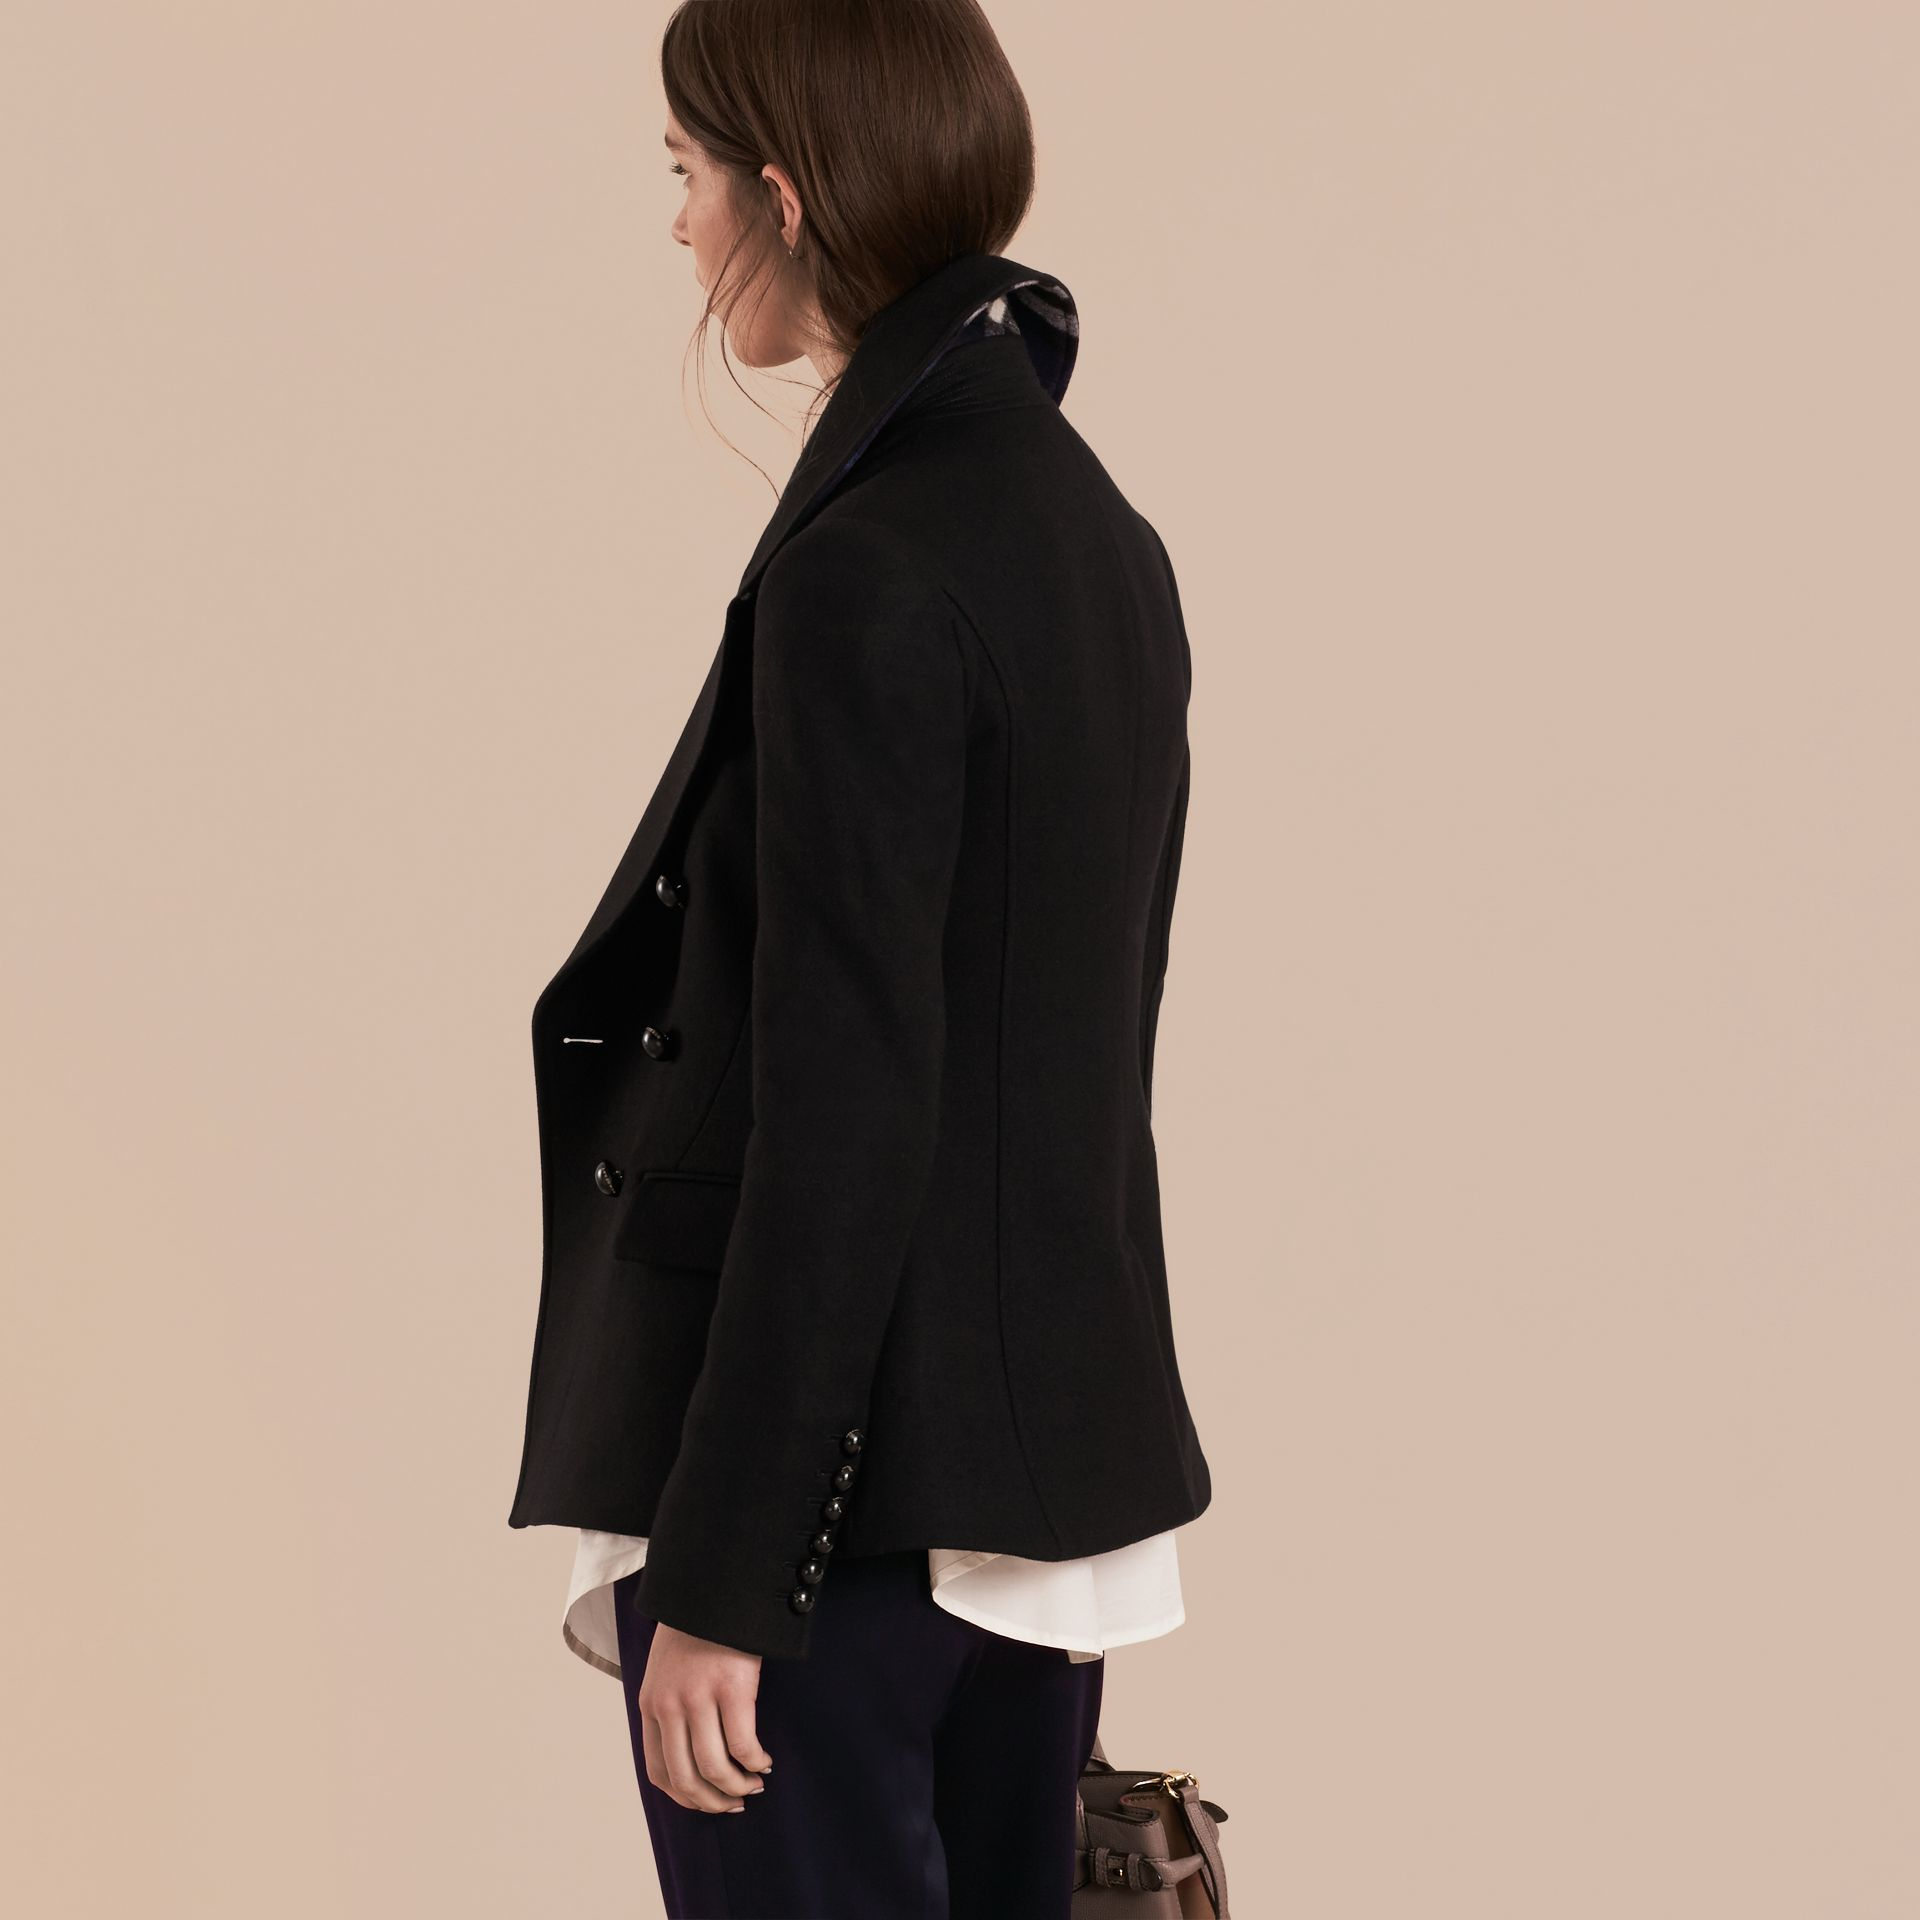 Tailored Wool Blend Jacket in Black - Women | Burberry - gallery image 3